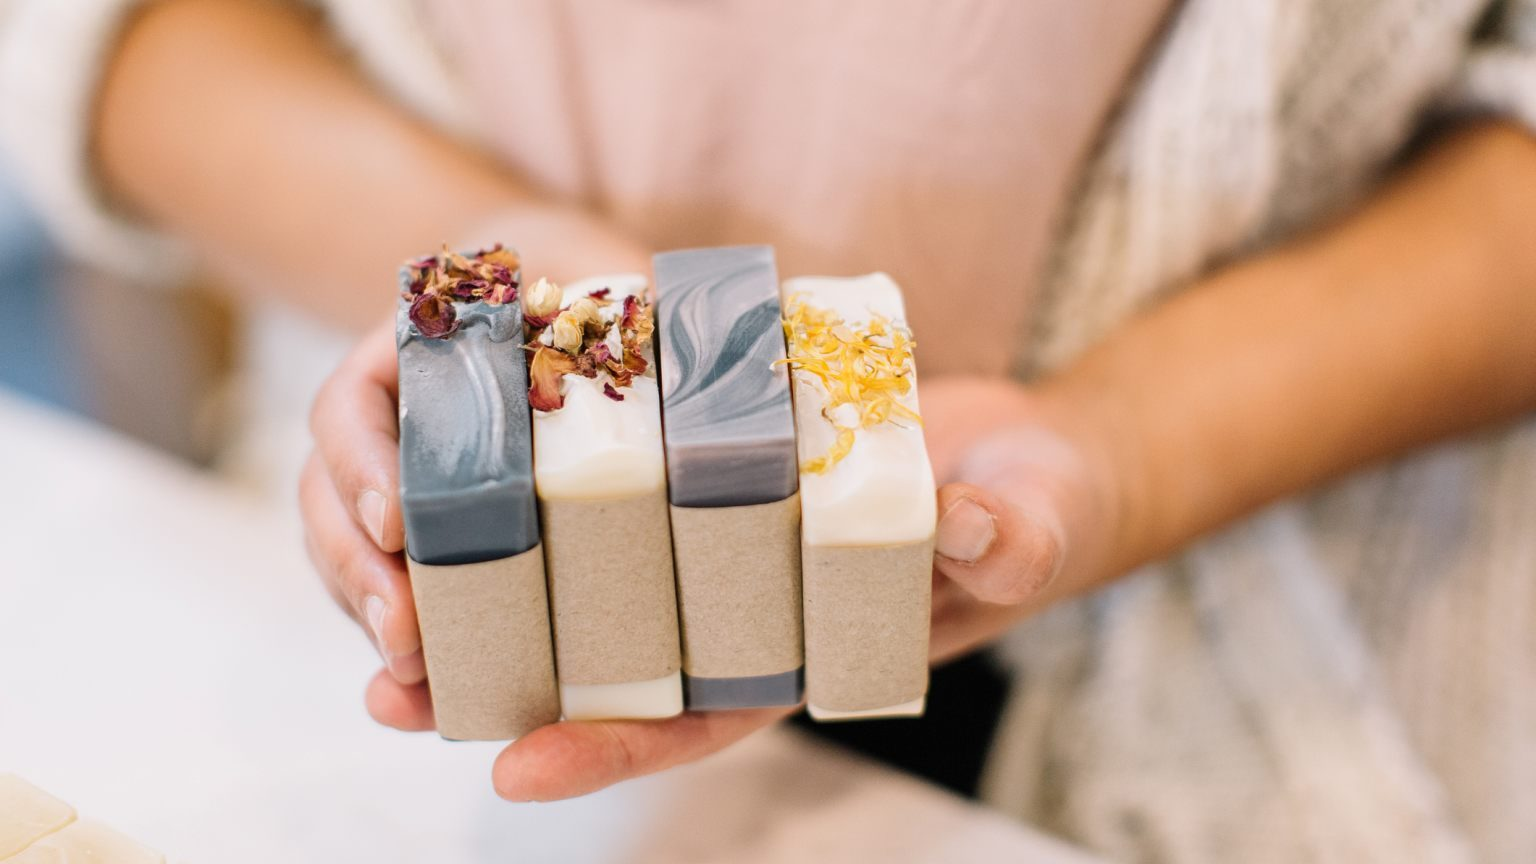 Featuring different scents and flavors of homemade bars of soap.